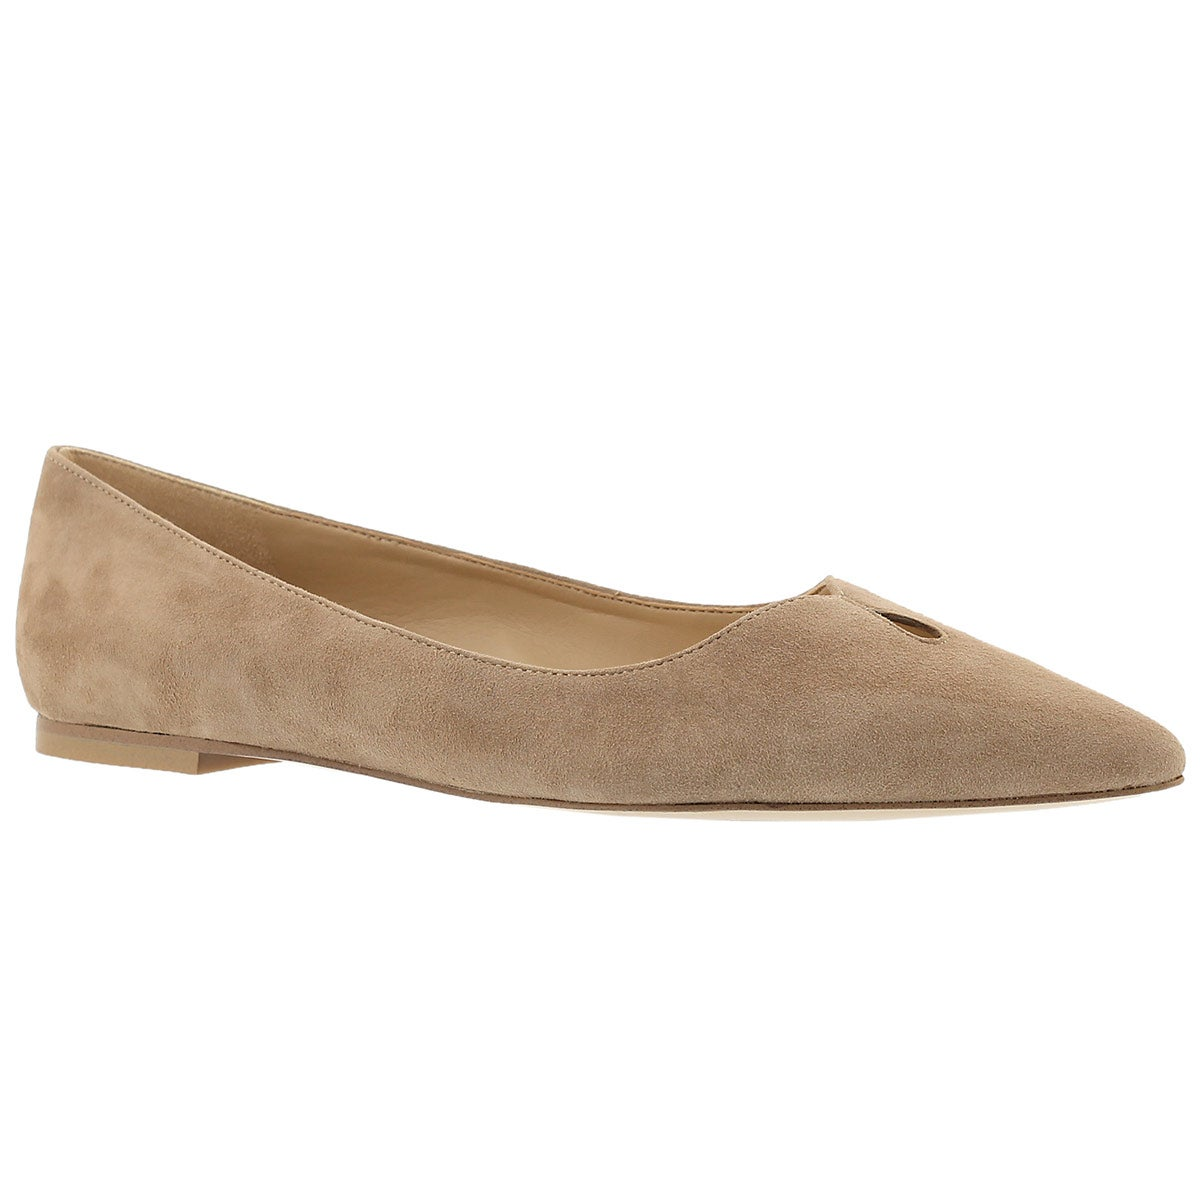 Lds Ruby oatmeal suede dress flat